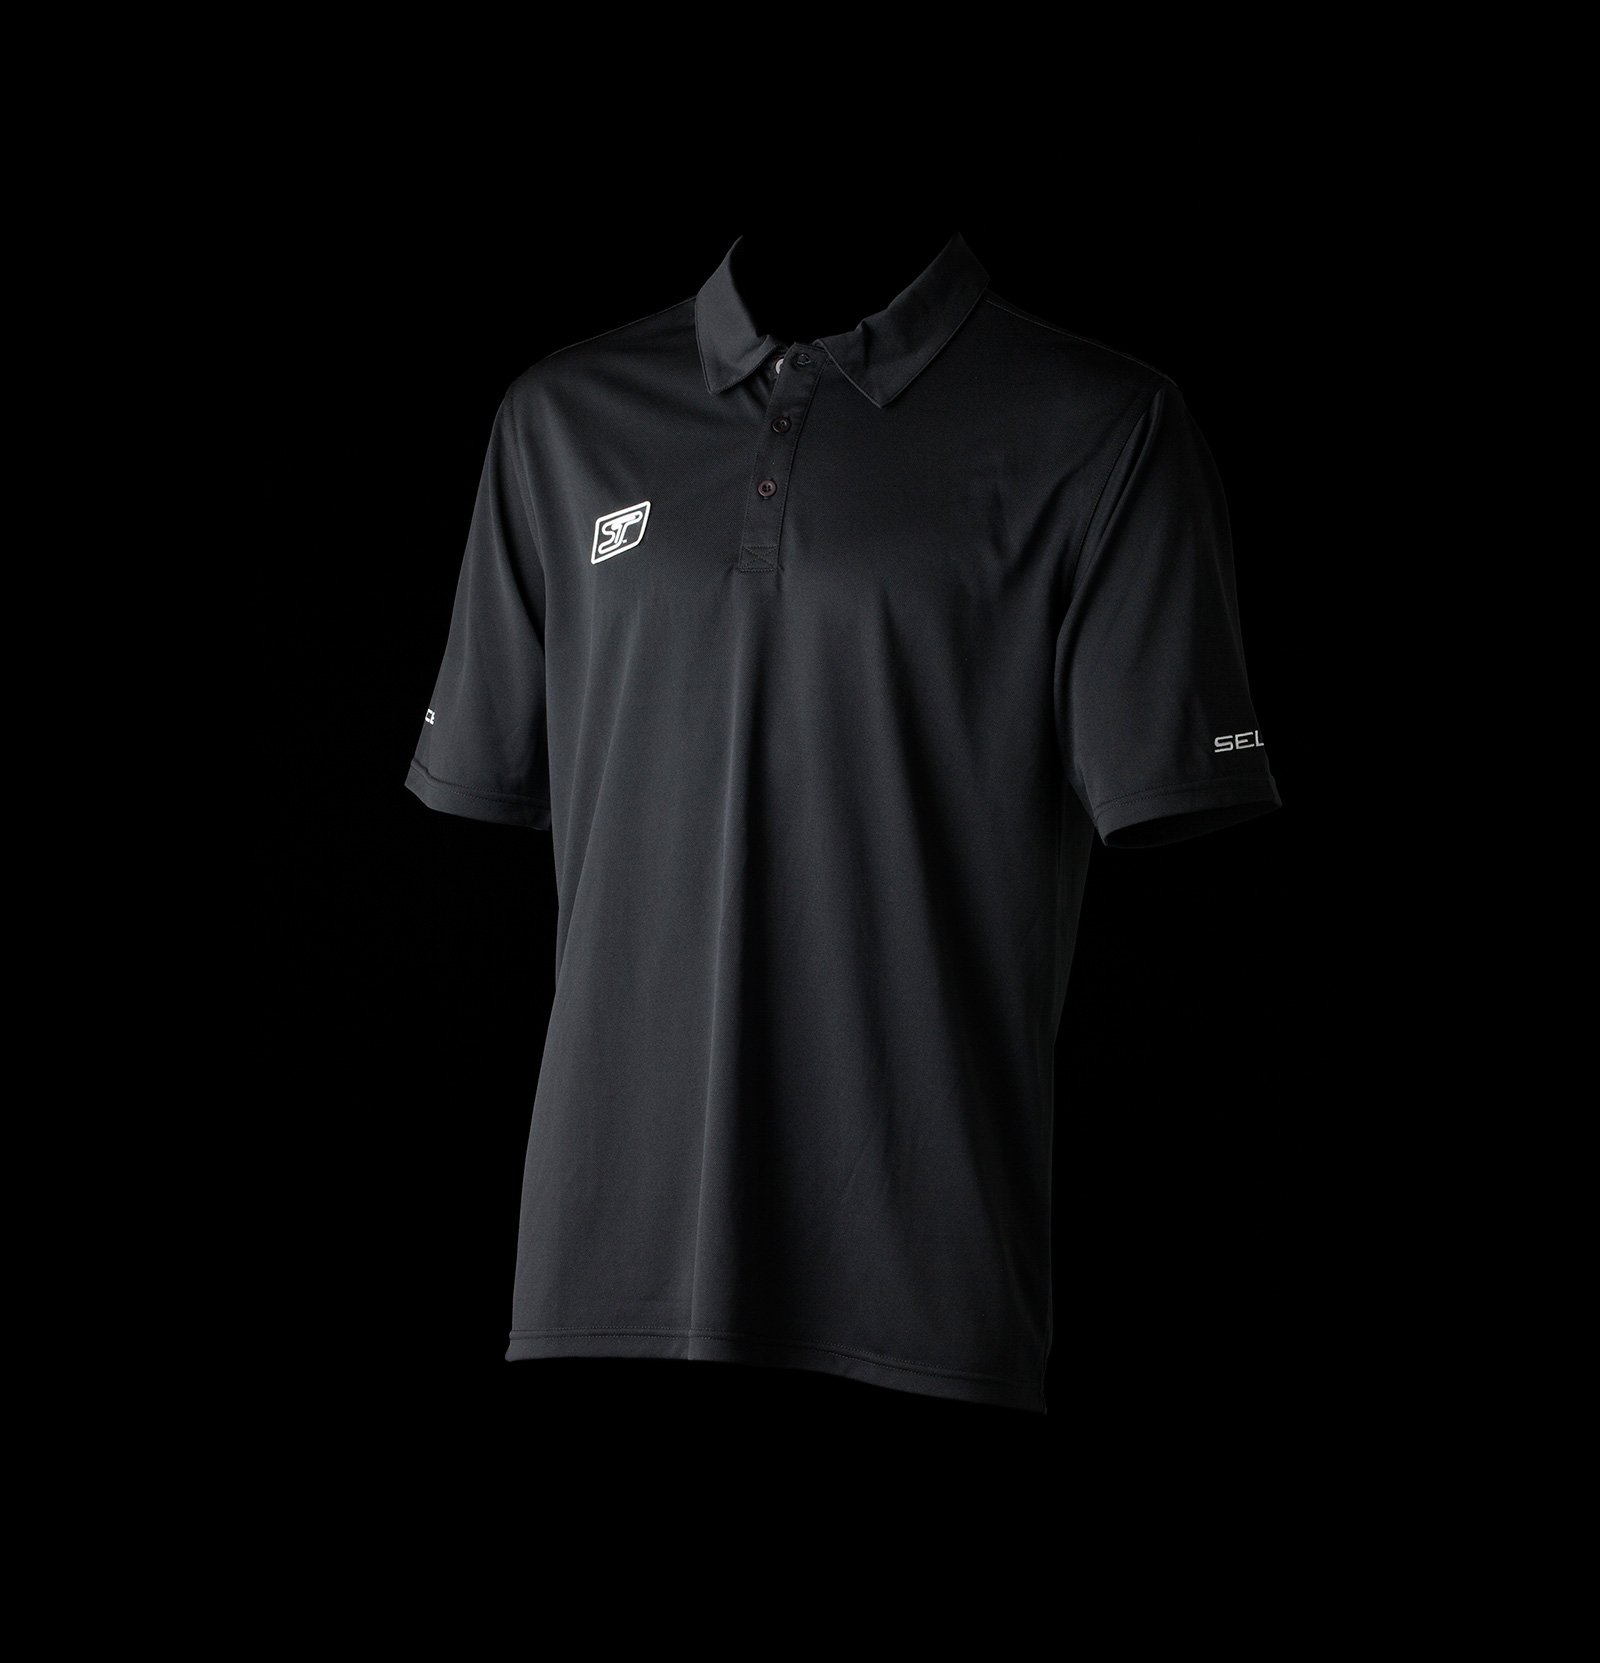 Excel-Polo-Shirt-Promo-06